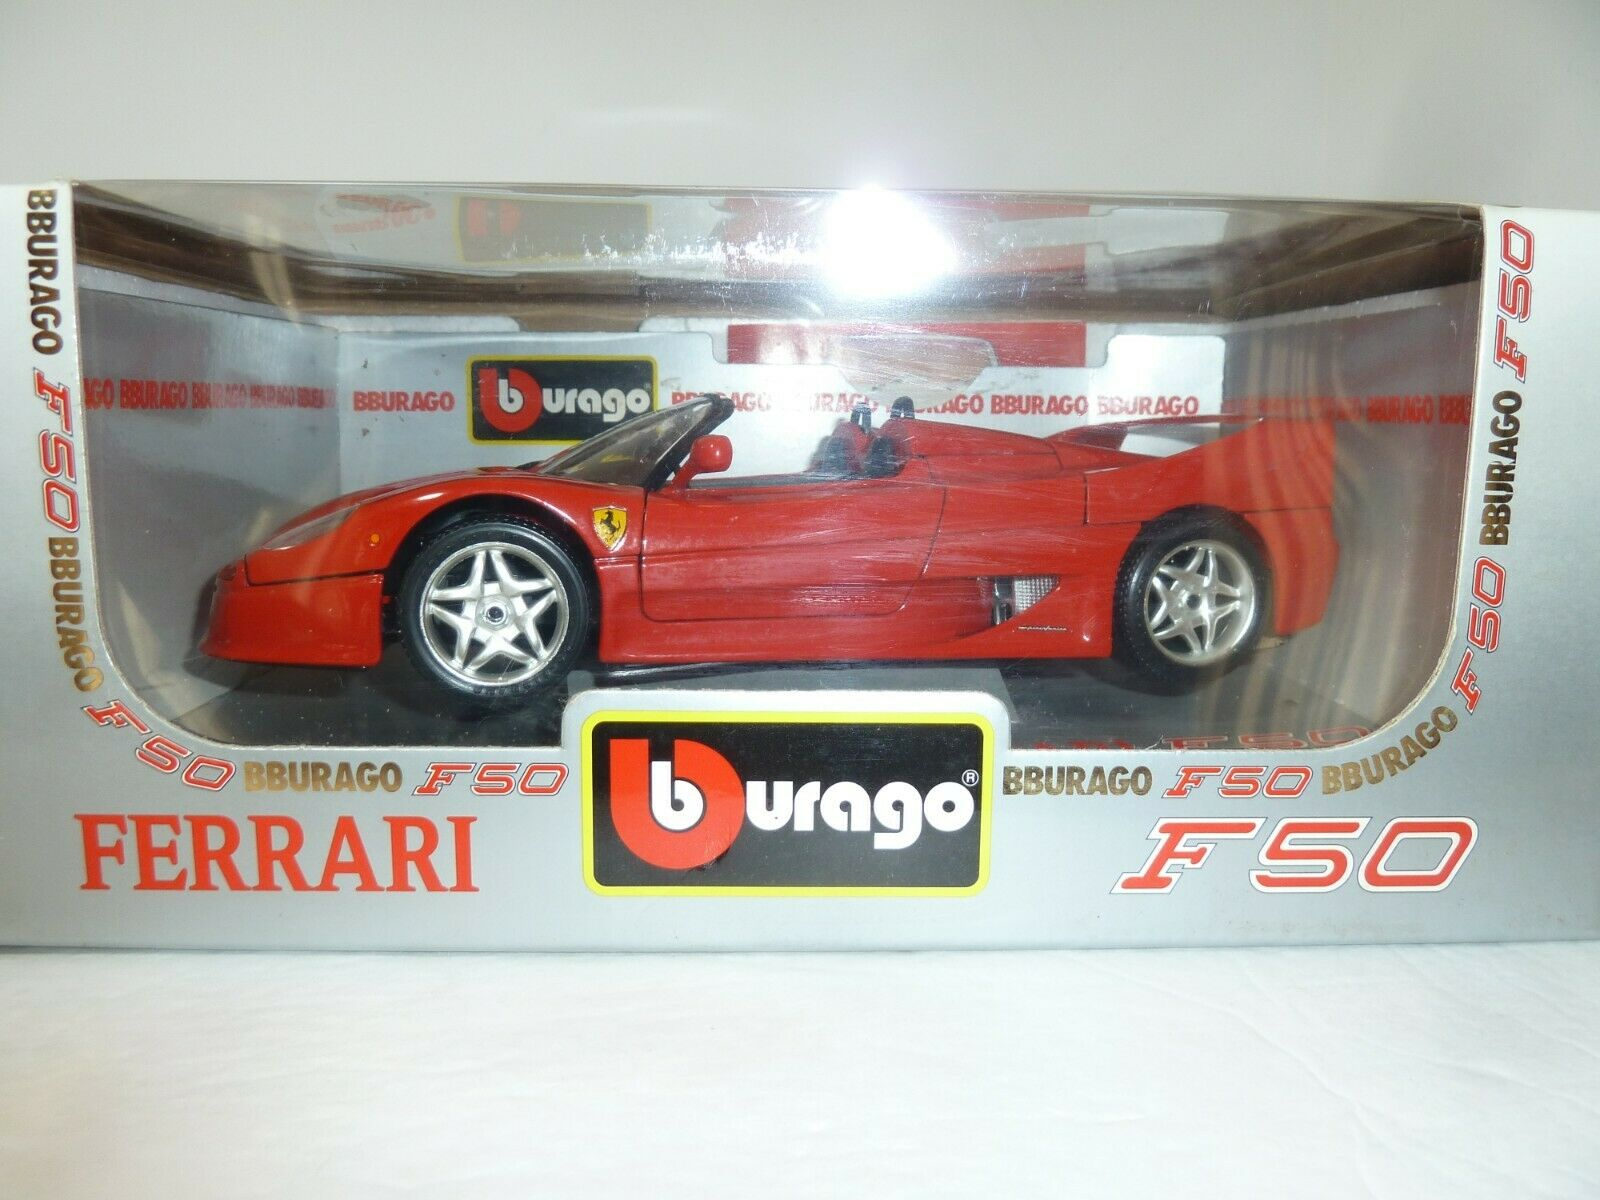 1 18 Burago Ferrari F50 1995 Diecast Congreenible Car Model 3352 Red